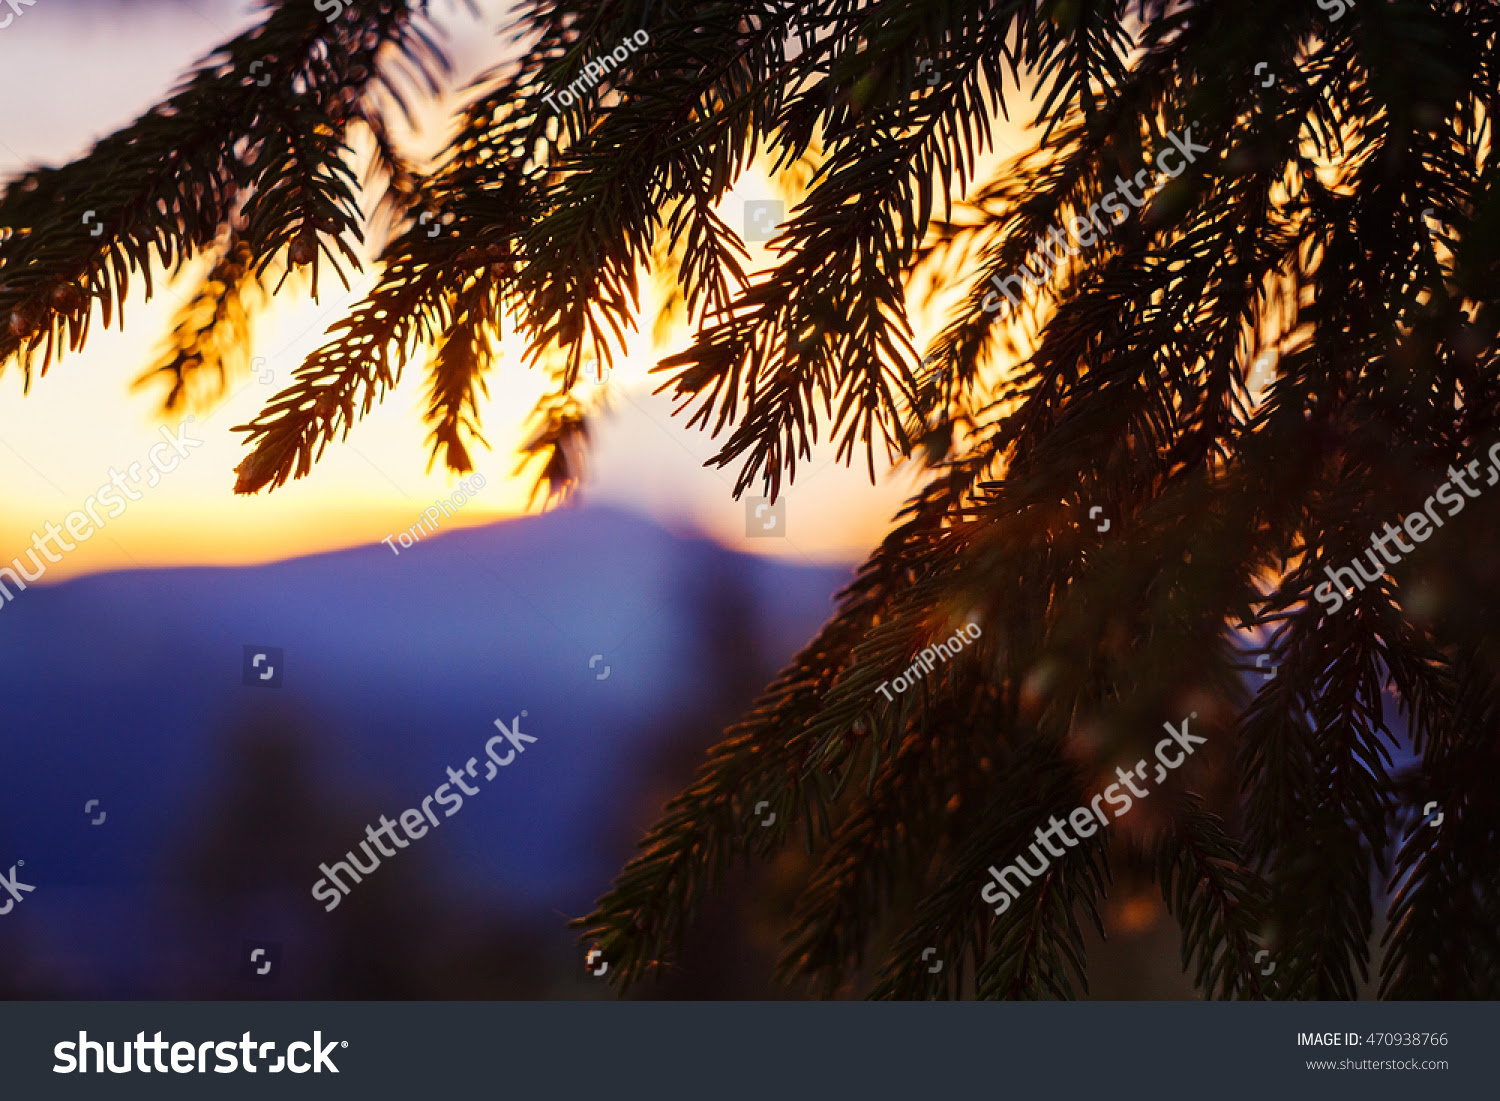 abstract, background, beam, beauty, black, carpathians, close, color, colorful, countryside, dawn, dusk, evening, fir, focus, forest, gold, golden, hotspot, light, magic, majestic, mist, mountains, natural, nature, orange, outdoor, pine, red, scene, scenery, scenic, season, serenity, shadow, shallow, silhouette, spruce, summer, sun, sunbeam, sunny, sunrise, sunset, travel, tree, warm, weather, wood, yellow